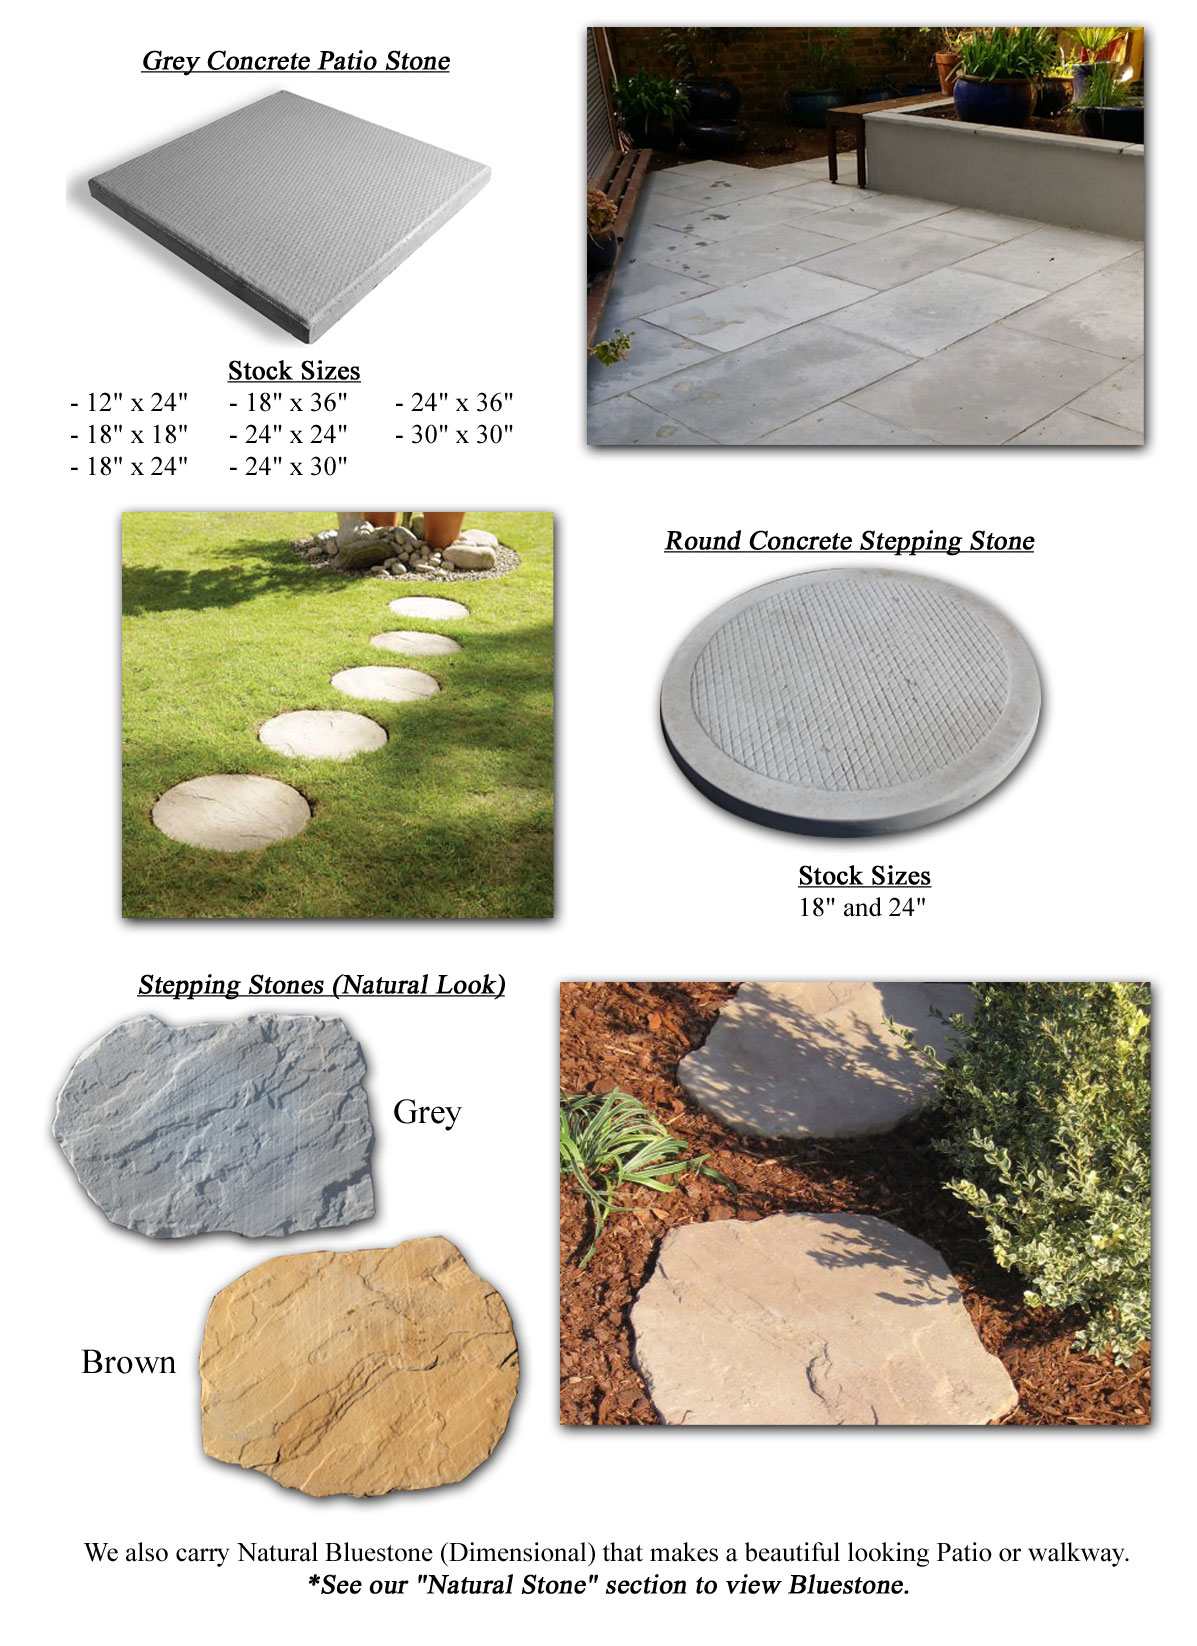 patiostepping stone